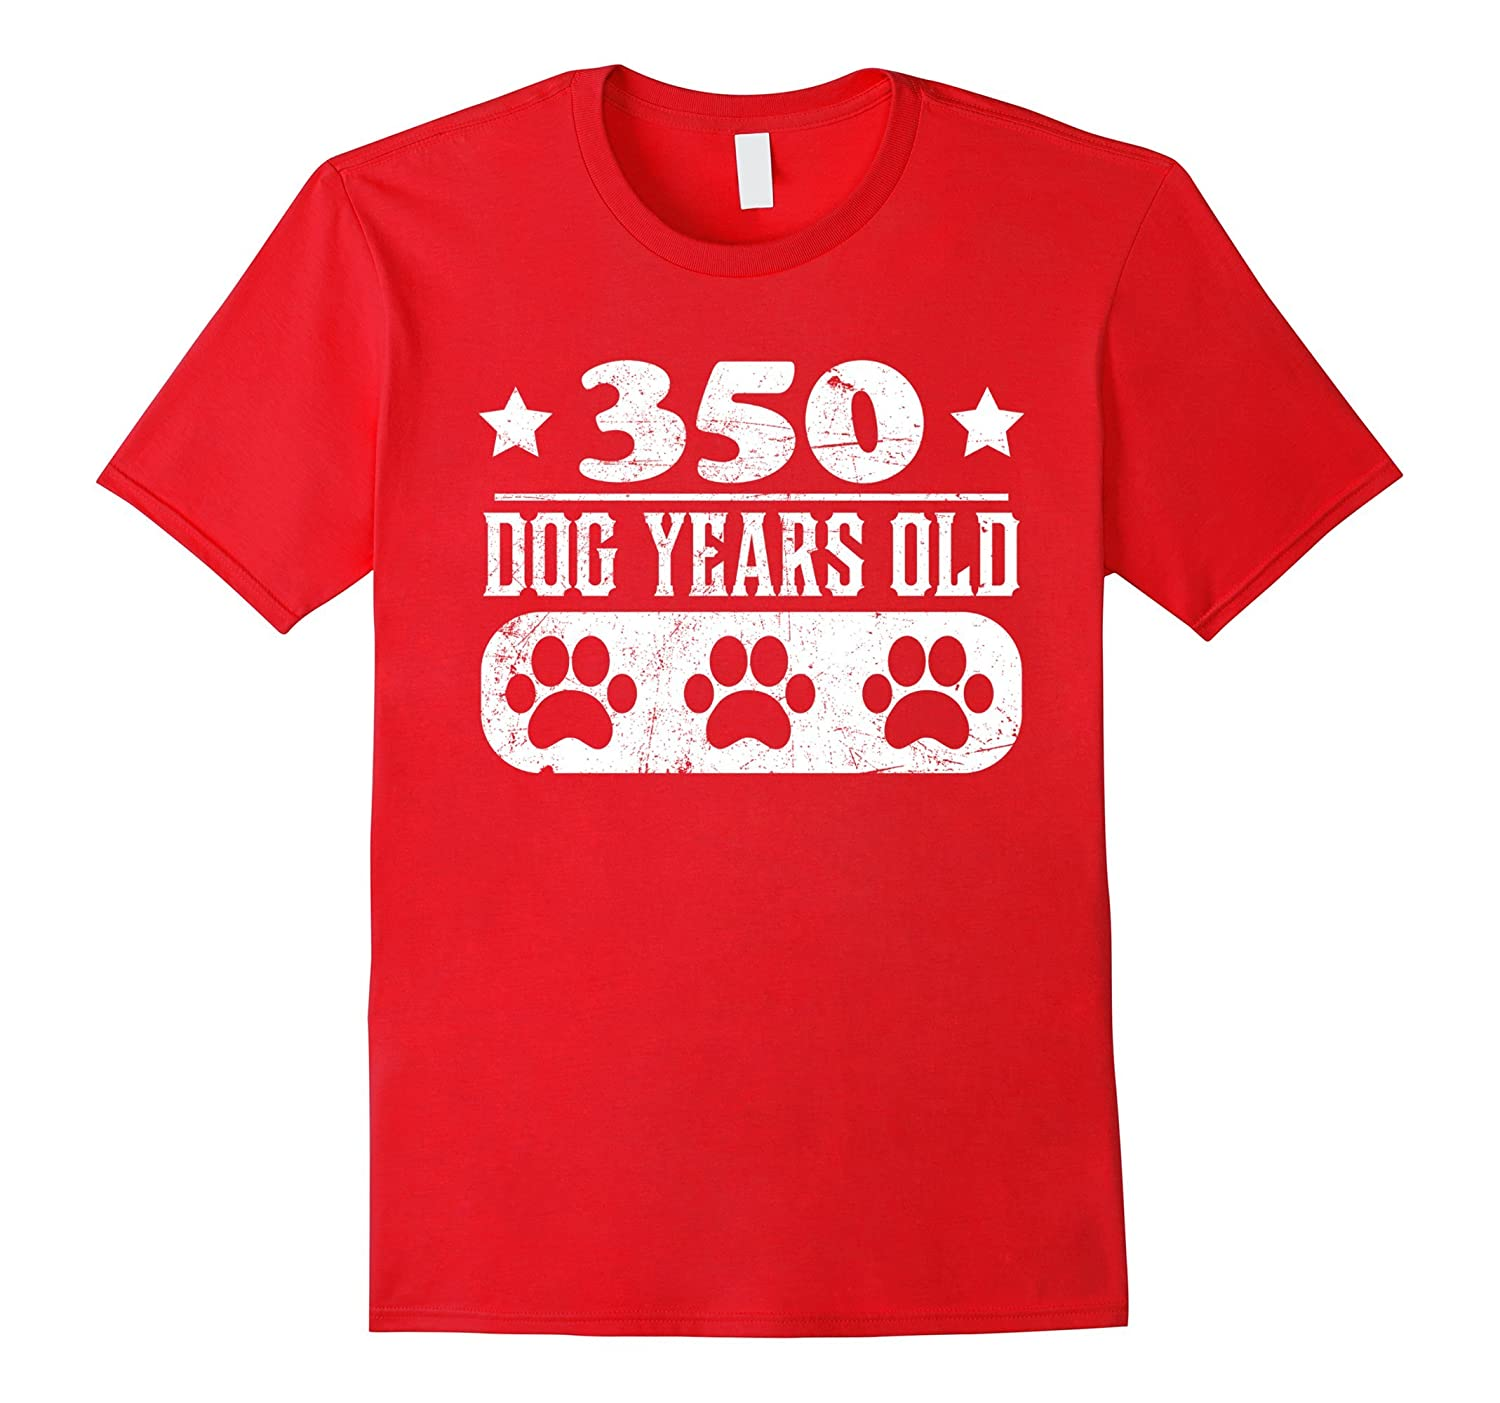 350 Dog Years Old Shirt 50th Birthday funny Gift shirt-TH